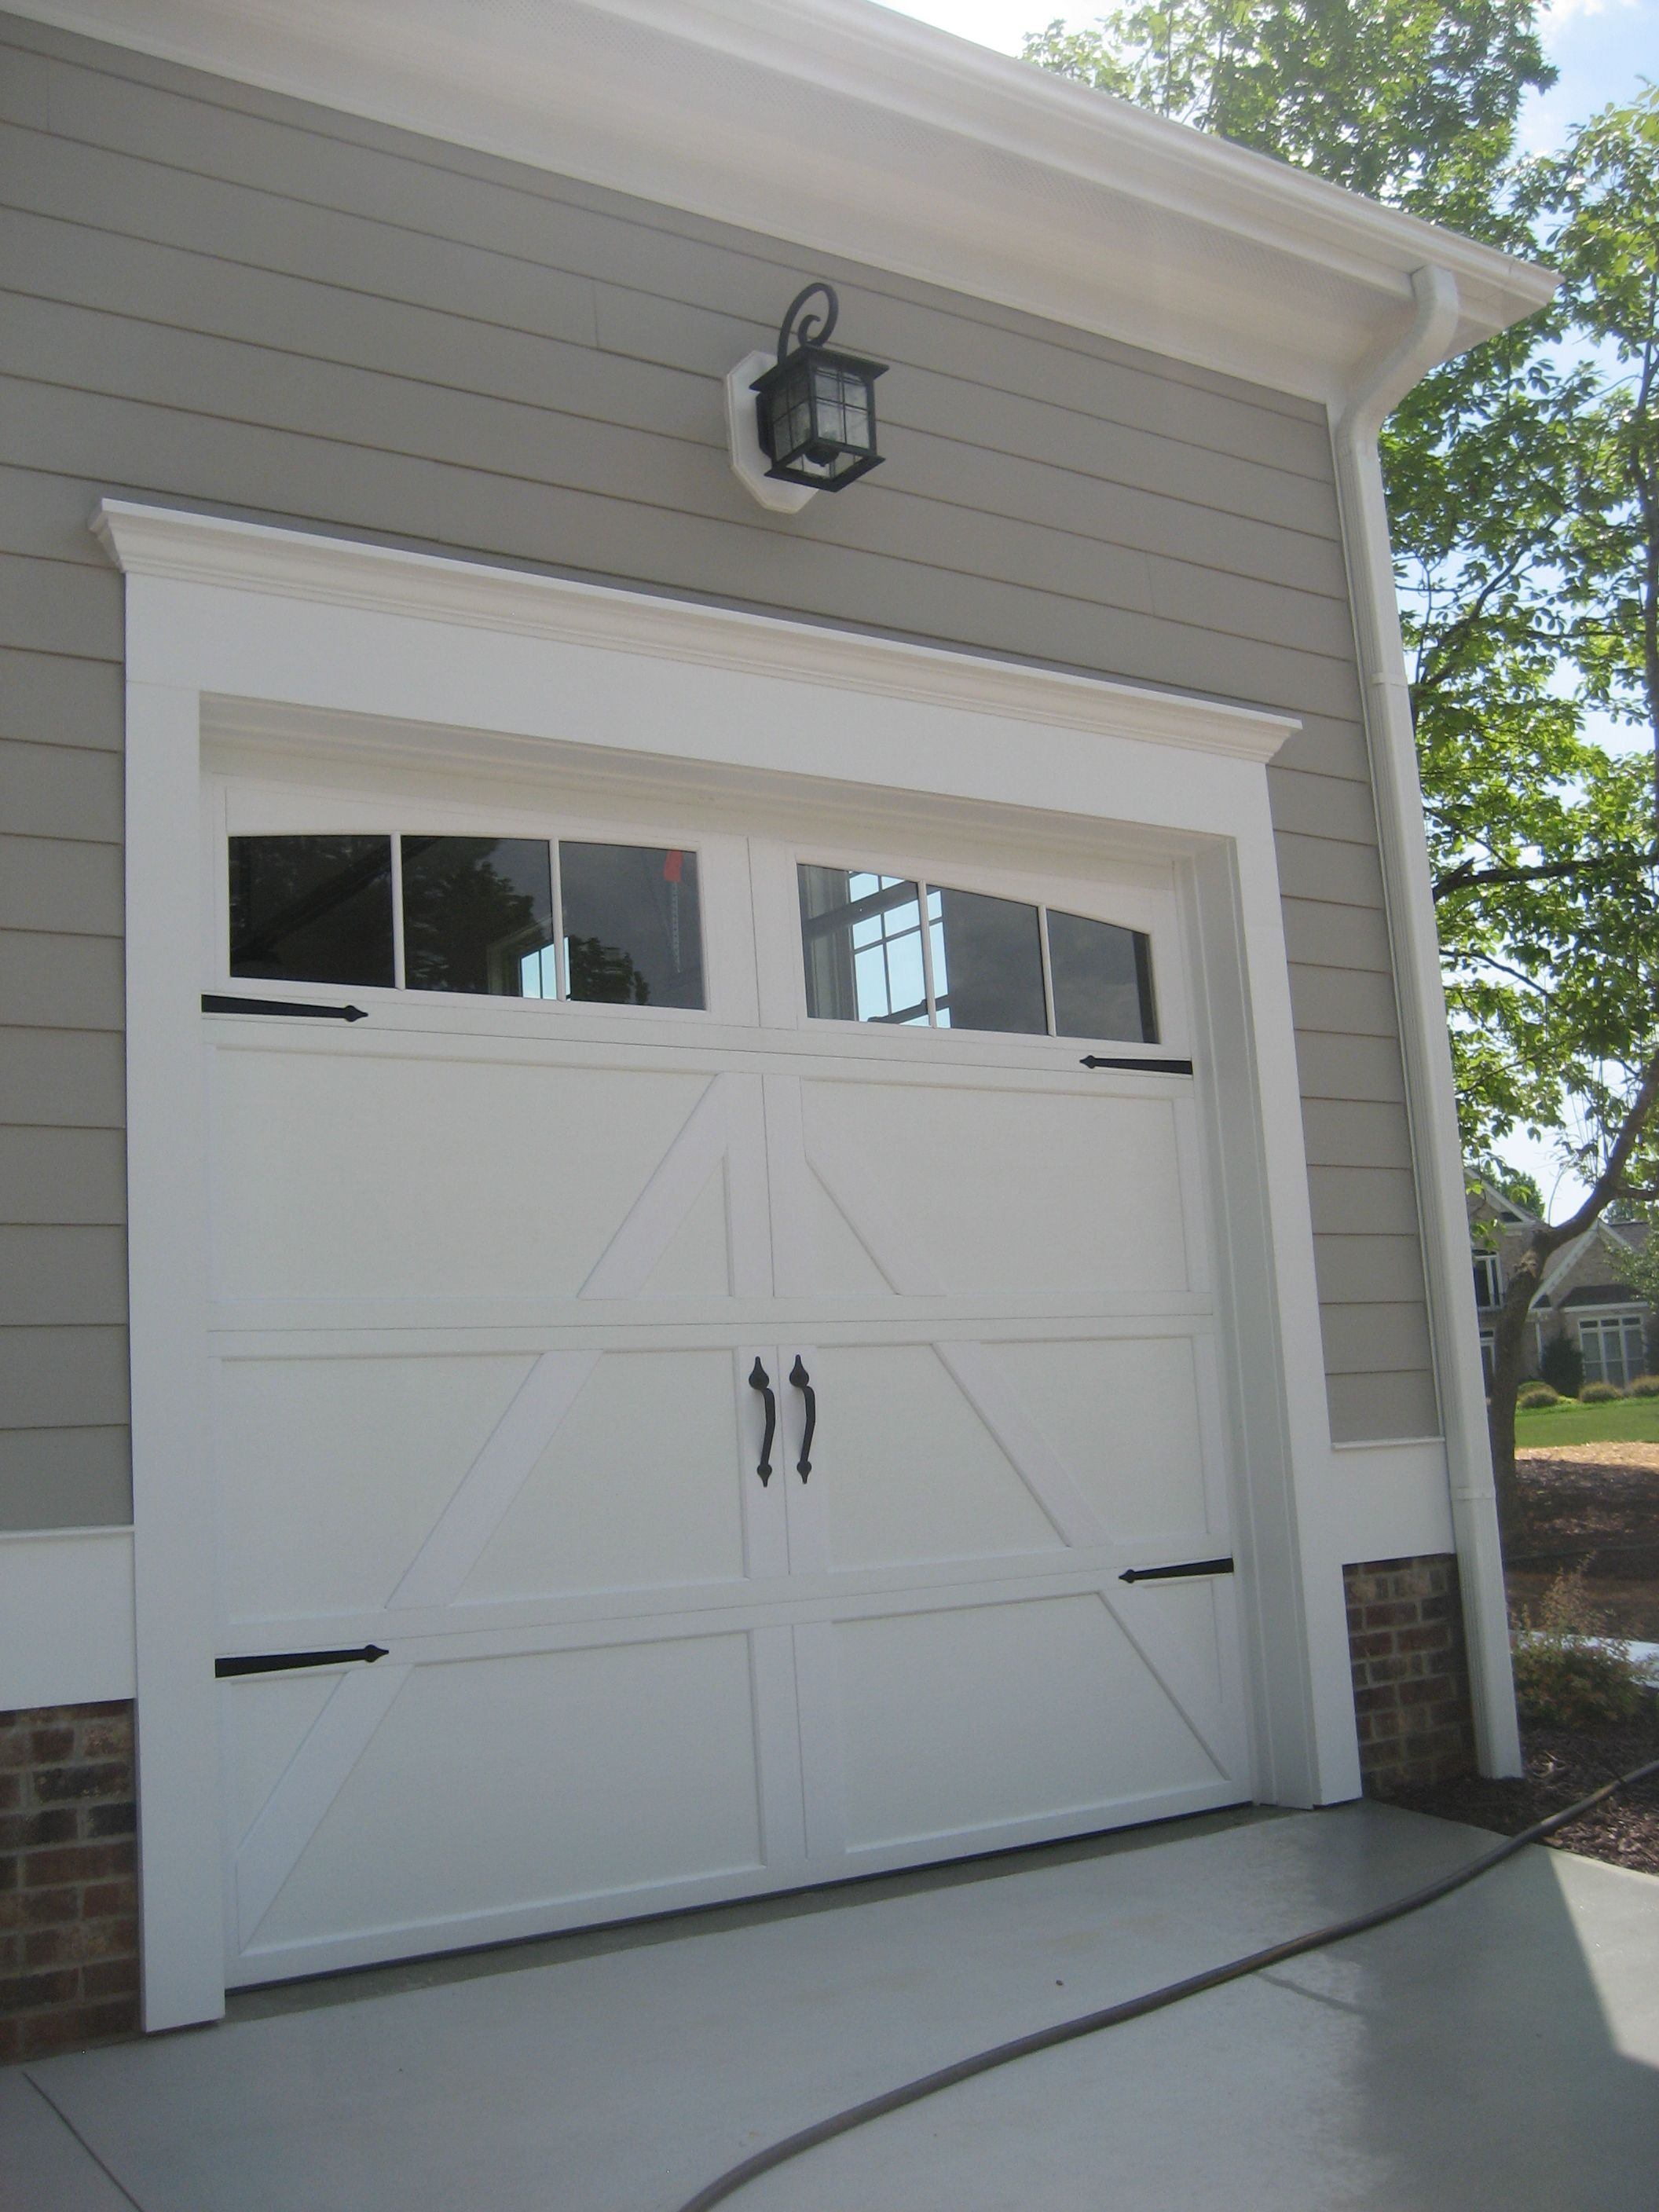 Garage door interior trim - Add Trim To Garage Door Add Hardware To You Boring Garage Door